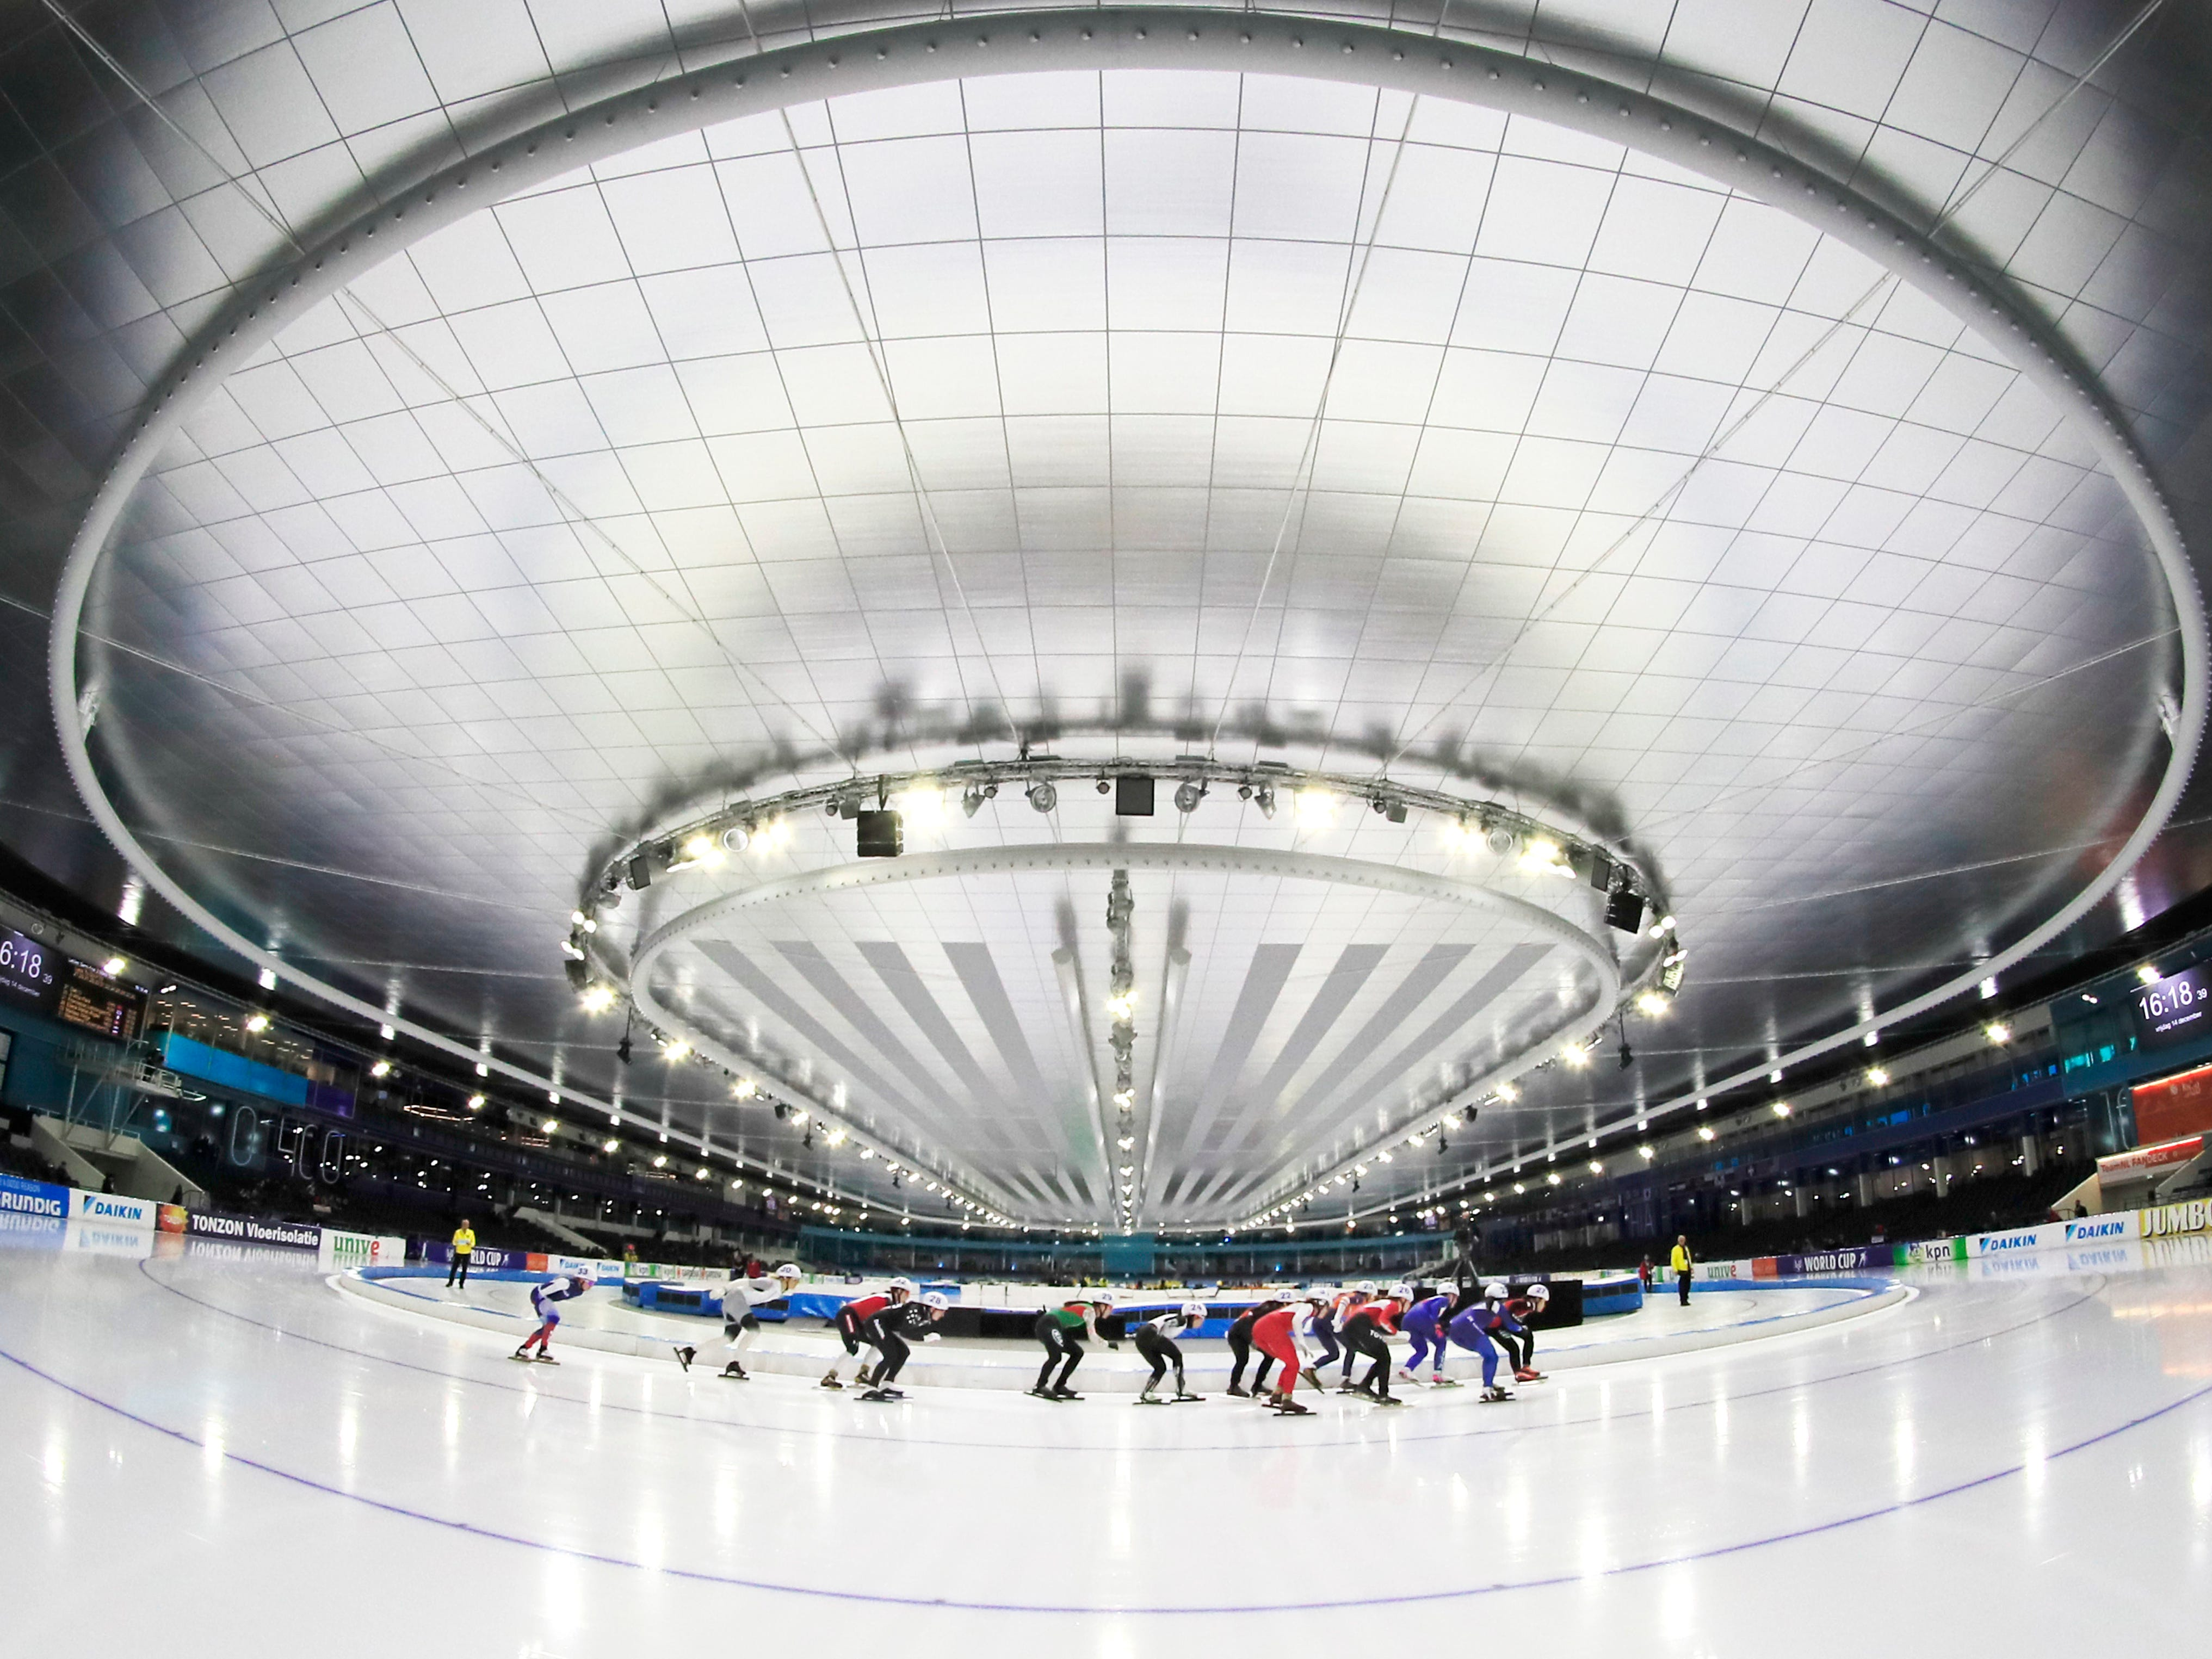 A view of the women's mass start of the World Cup speed skating semi-final at the Thialf ice arena in Heerenveen, Netherlands, Friday, Dec.14, 2018.